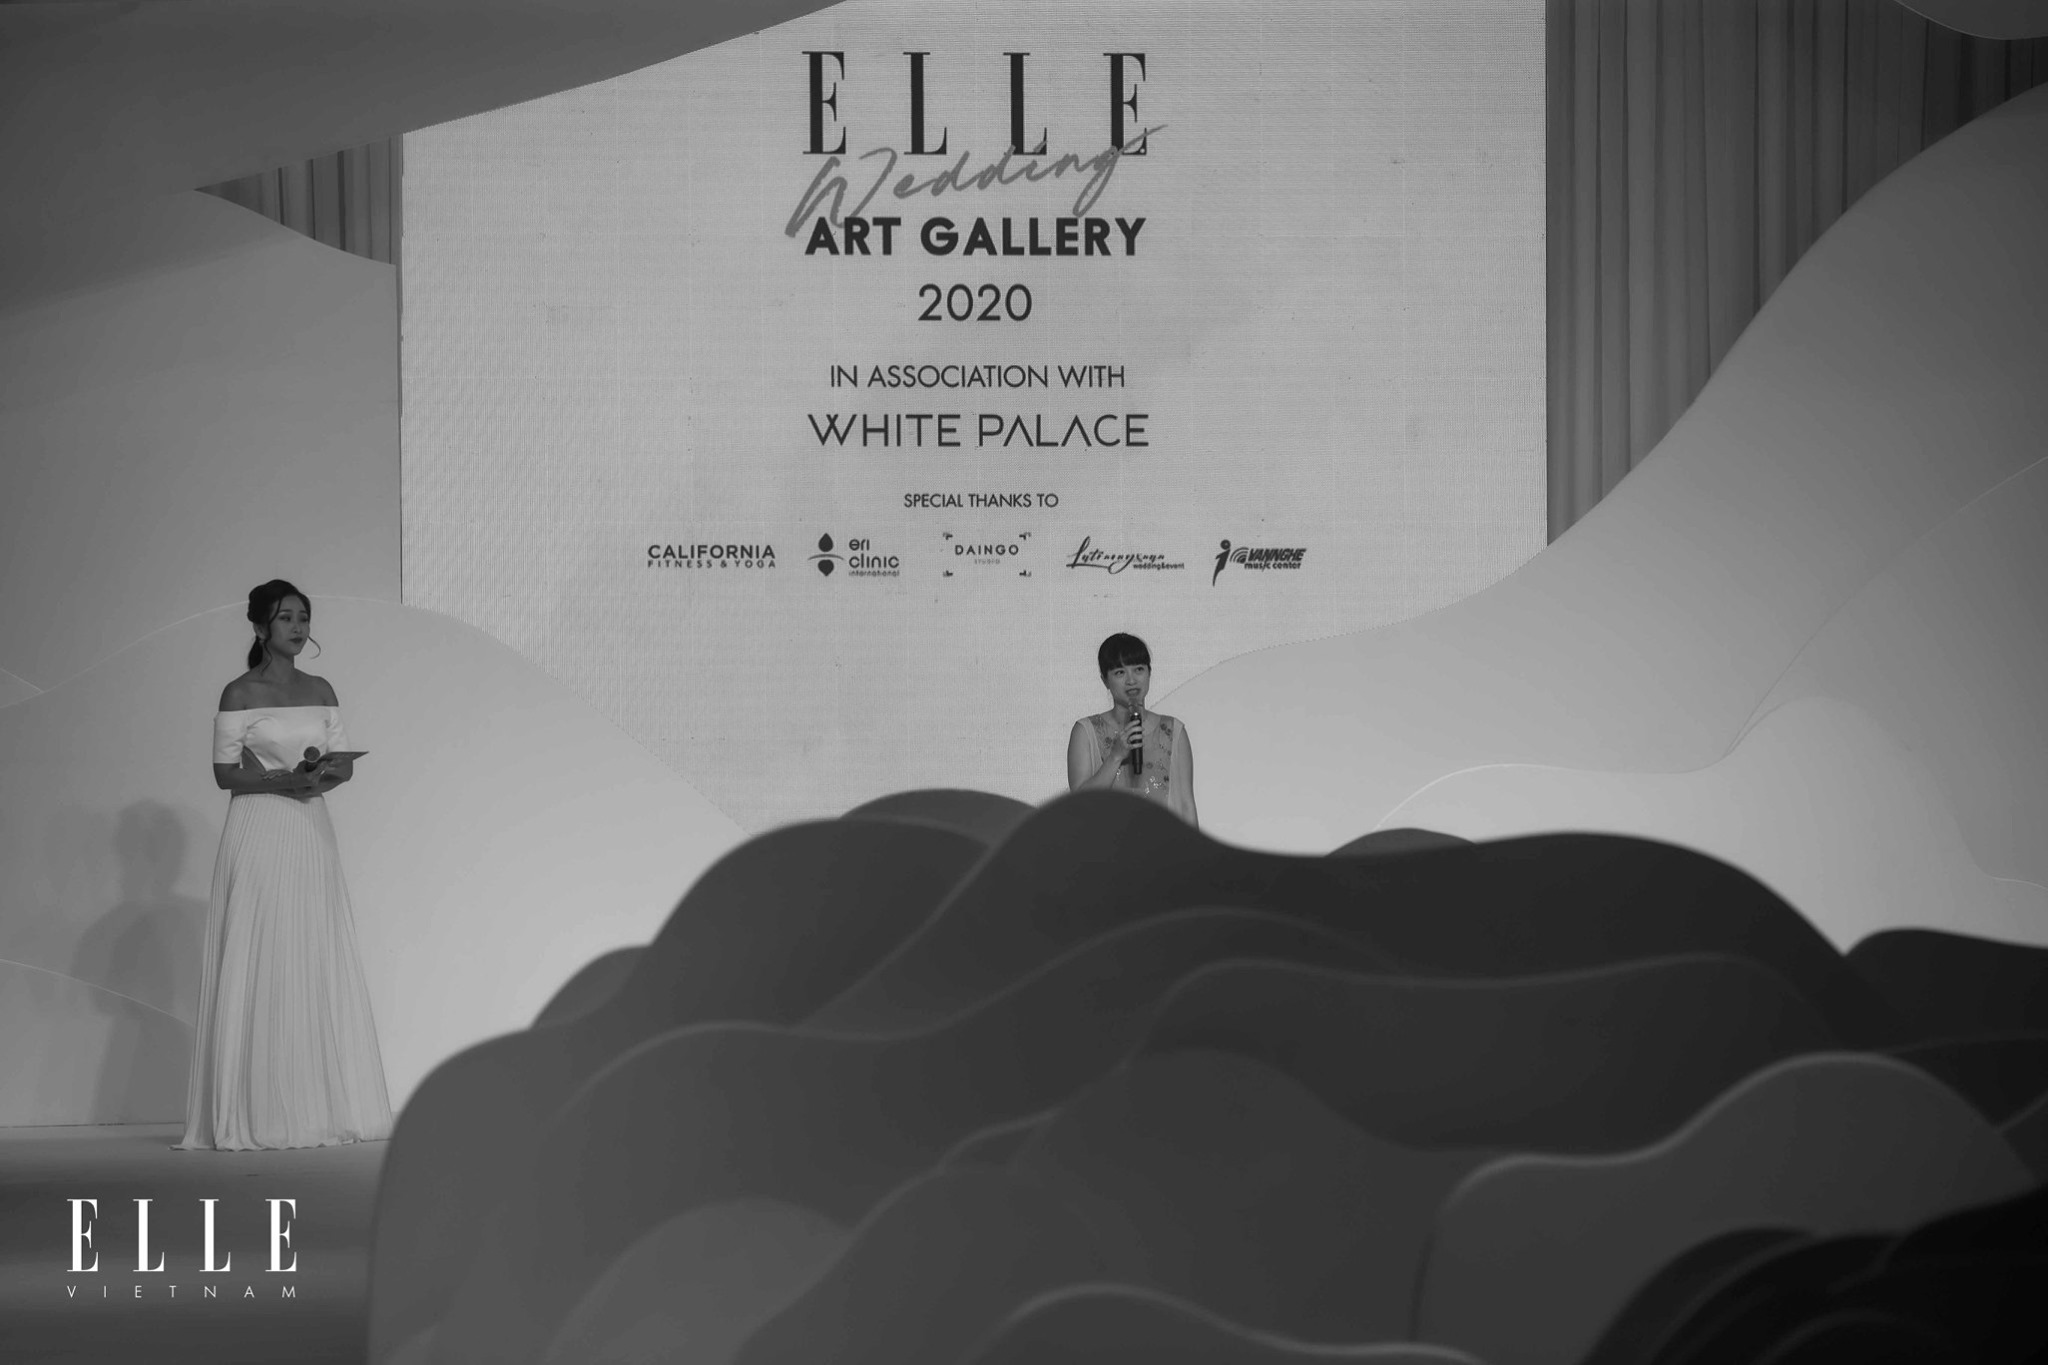 elle-wedding-art-gallery_speech khai mac